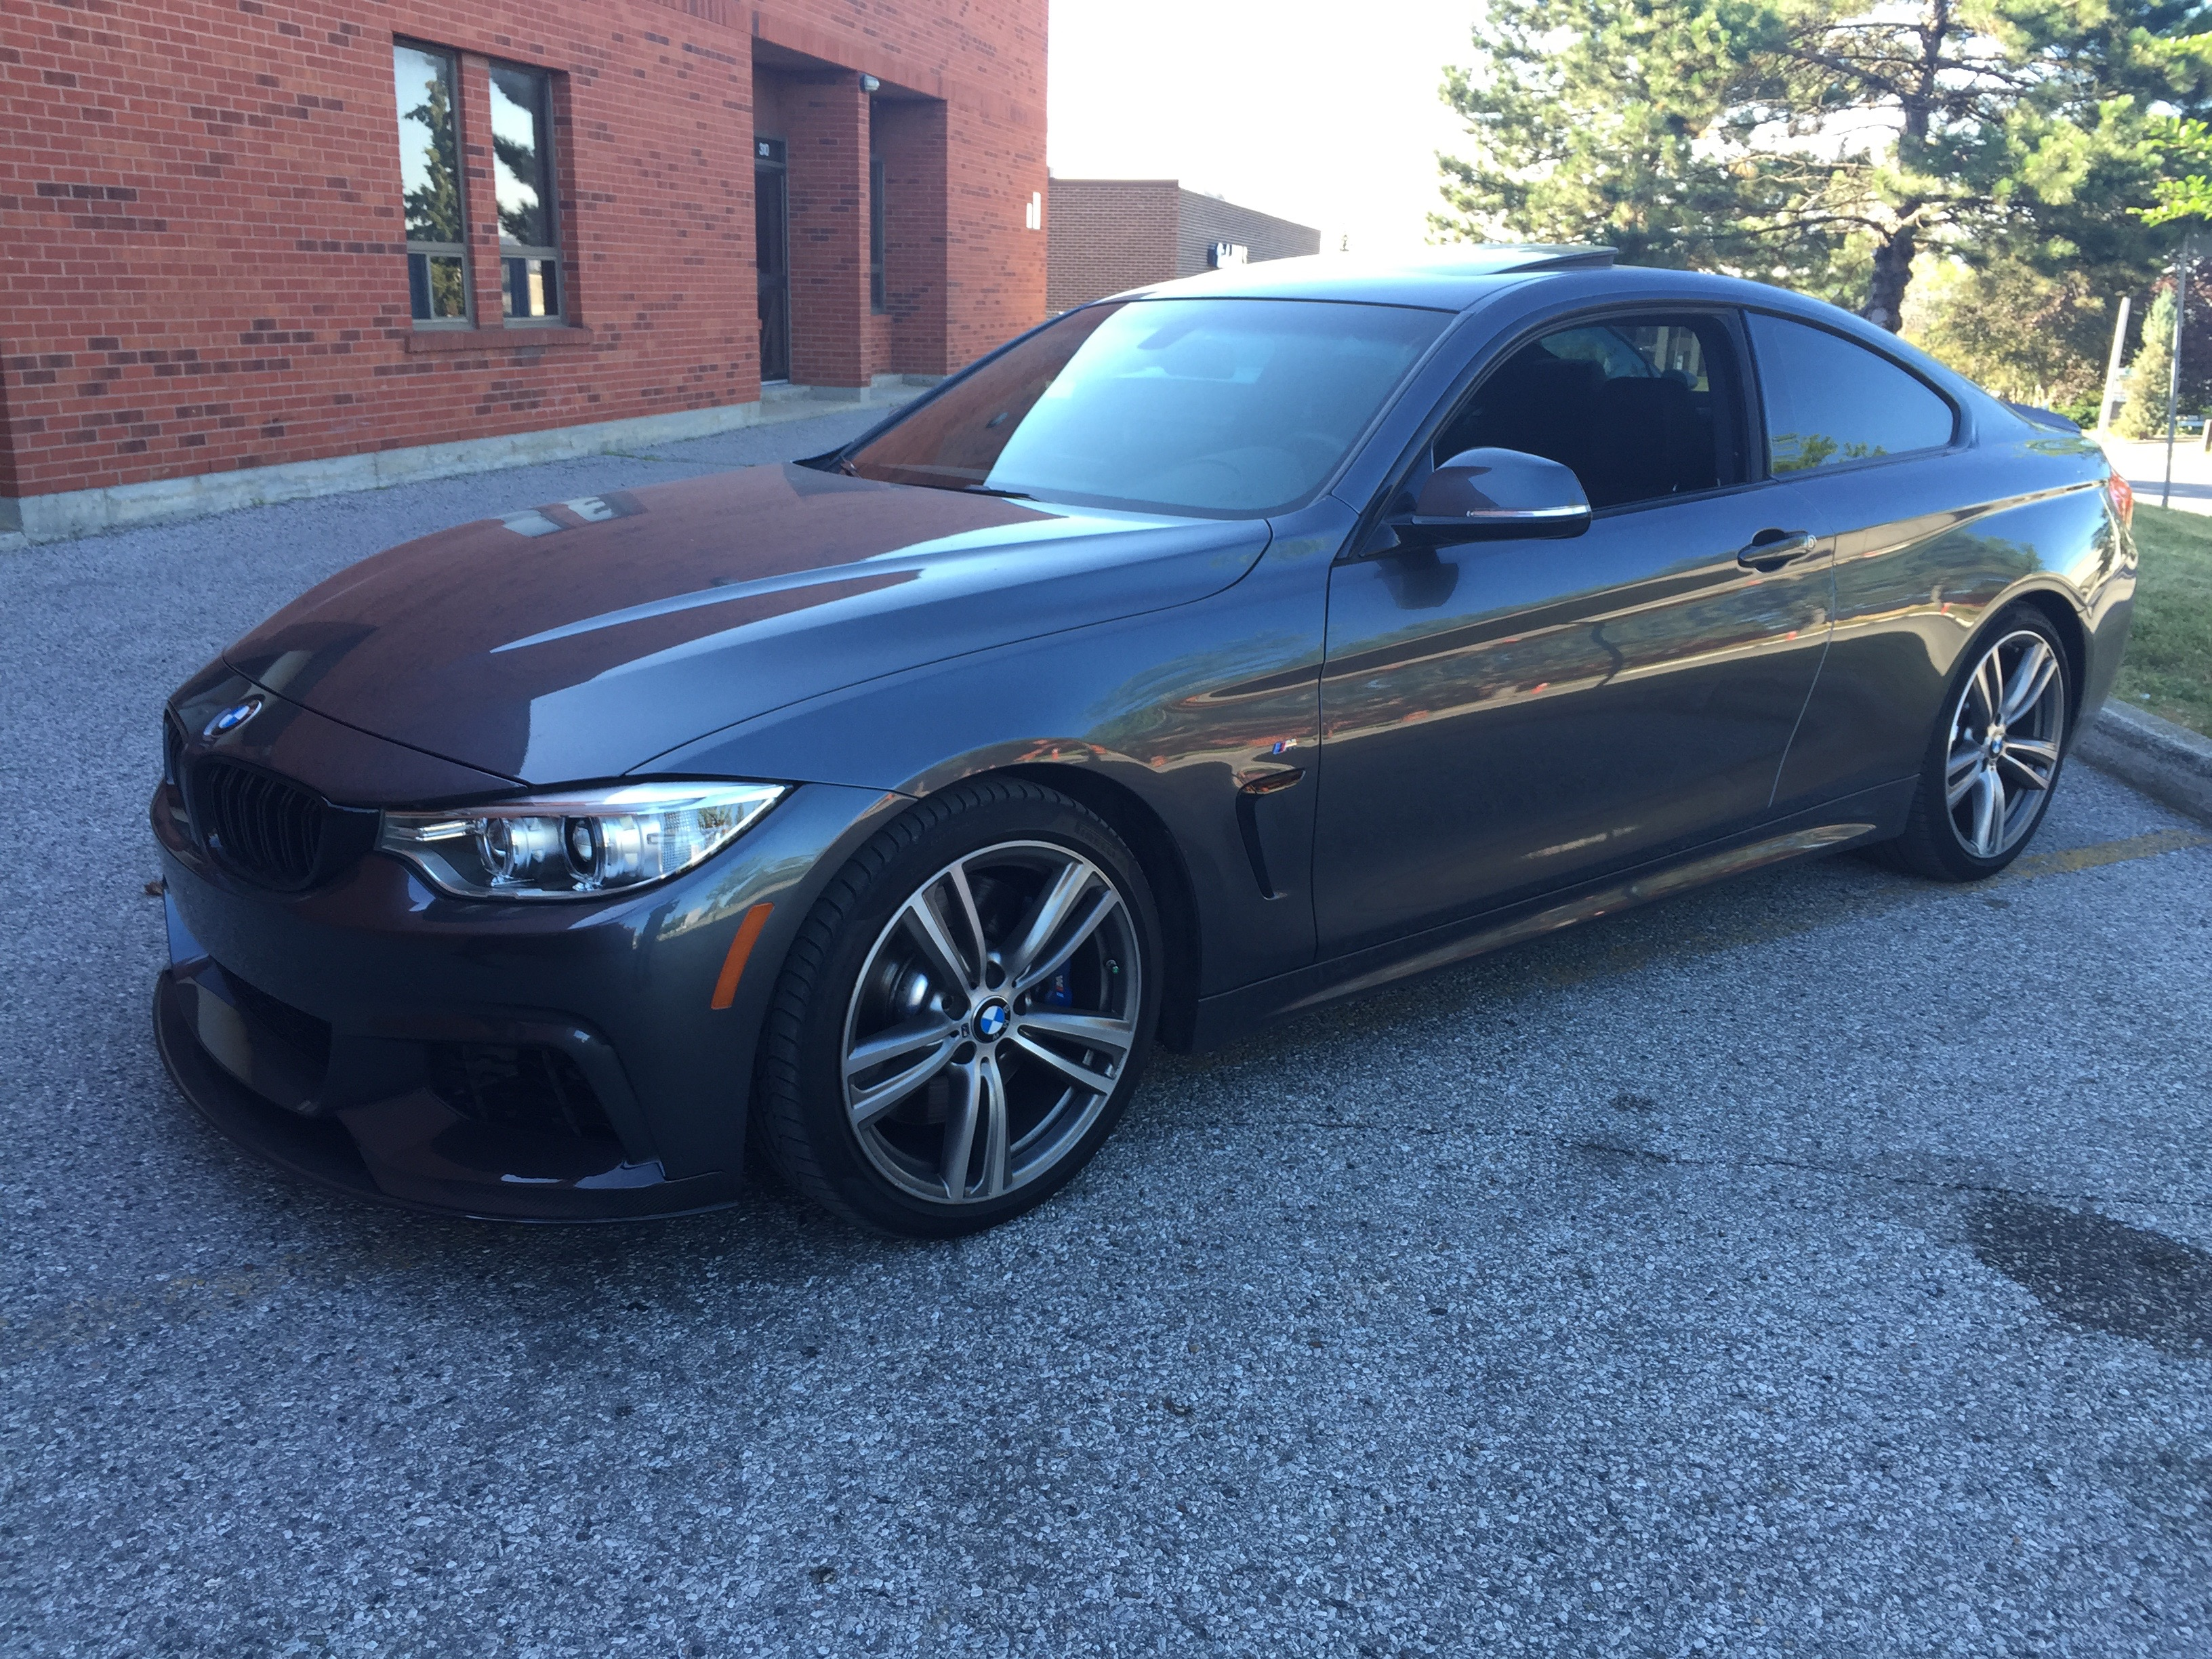 BMW 4 series 428i 2013 photo - 4